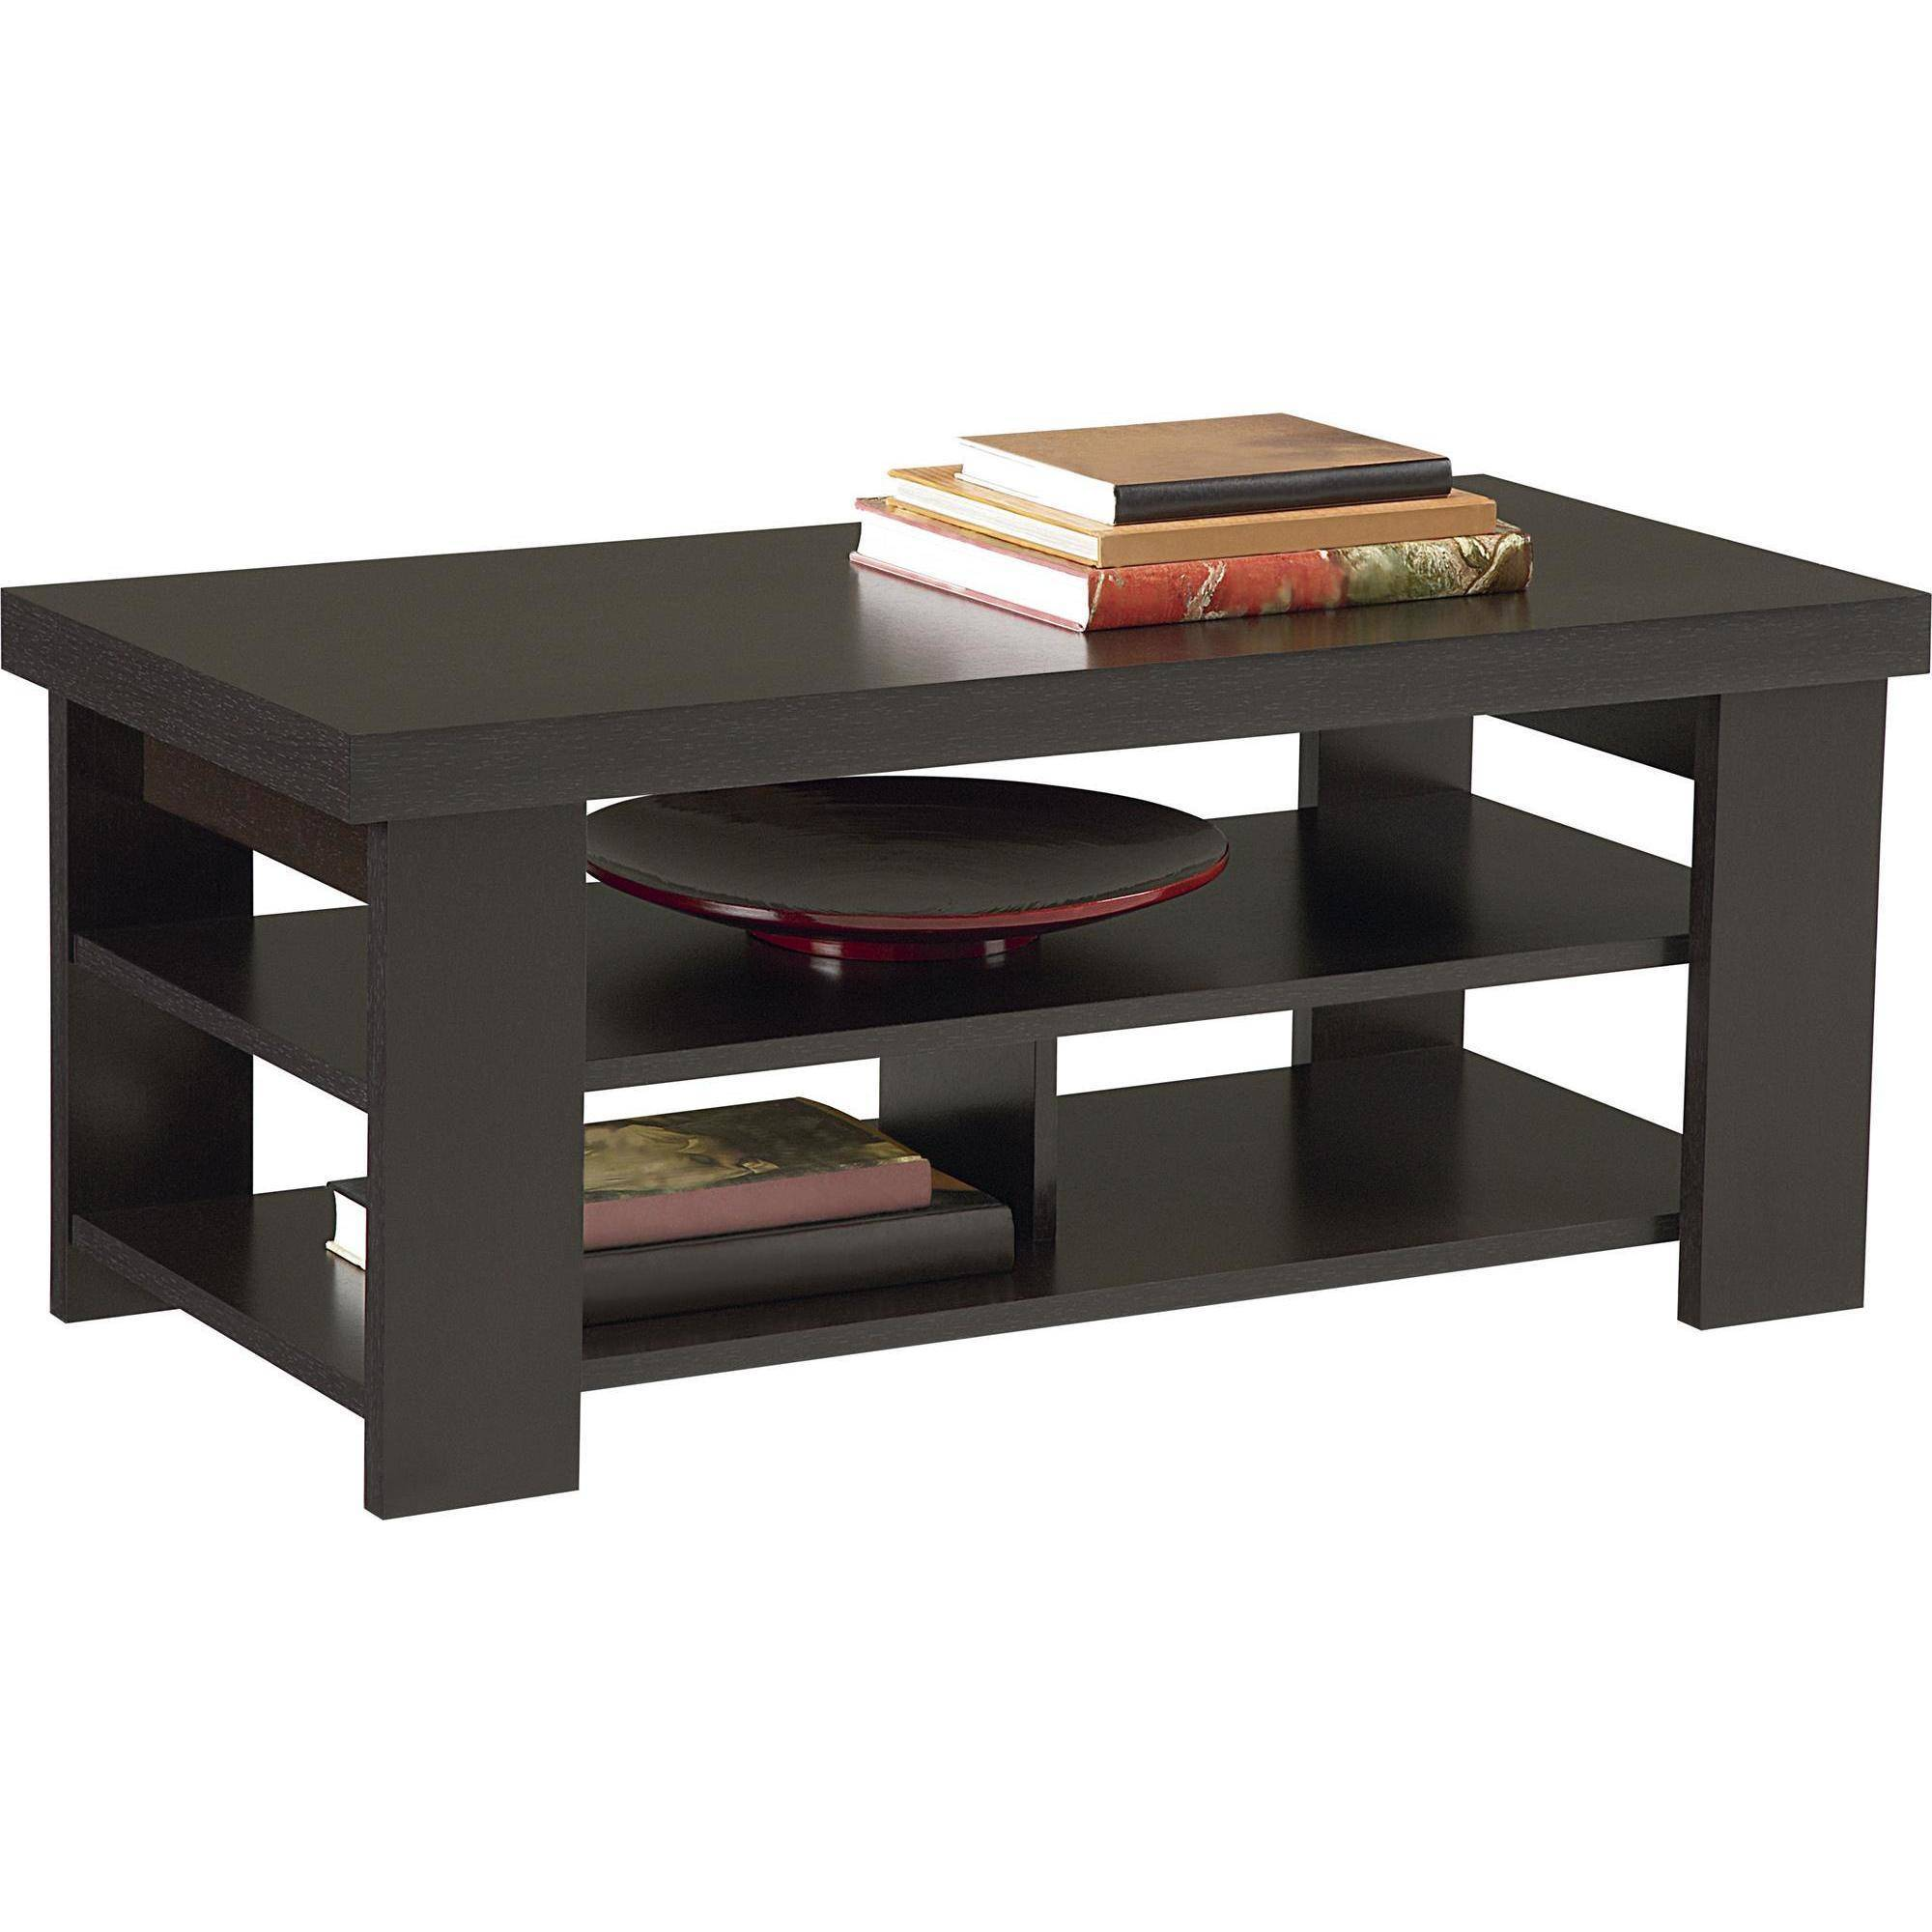 Larkin Coffee Table Sofa Table & End Table Value Bundle Espresso